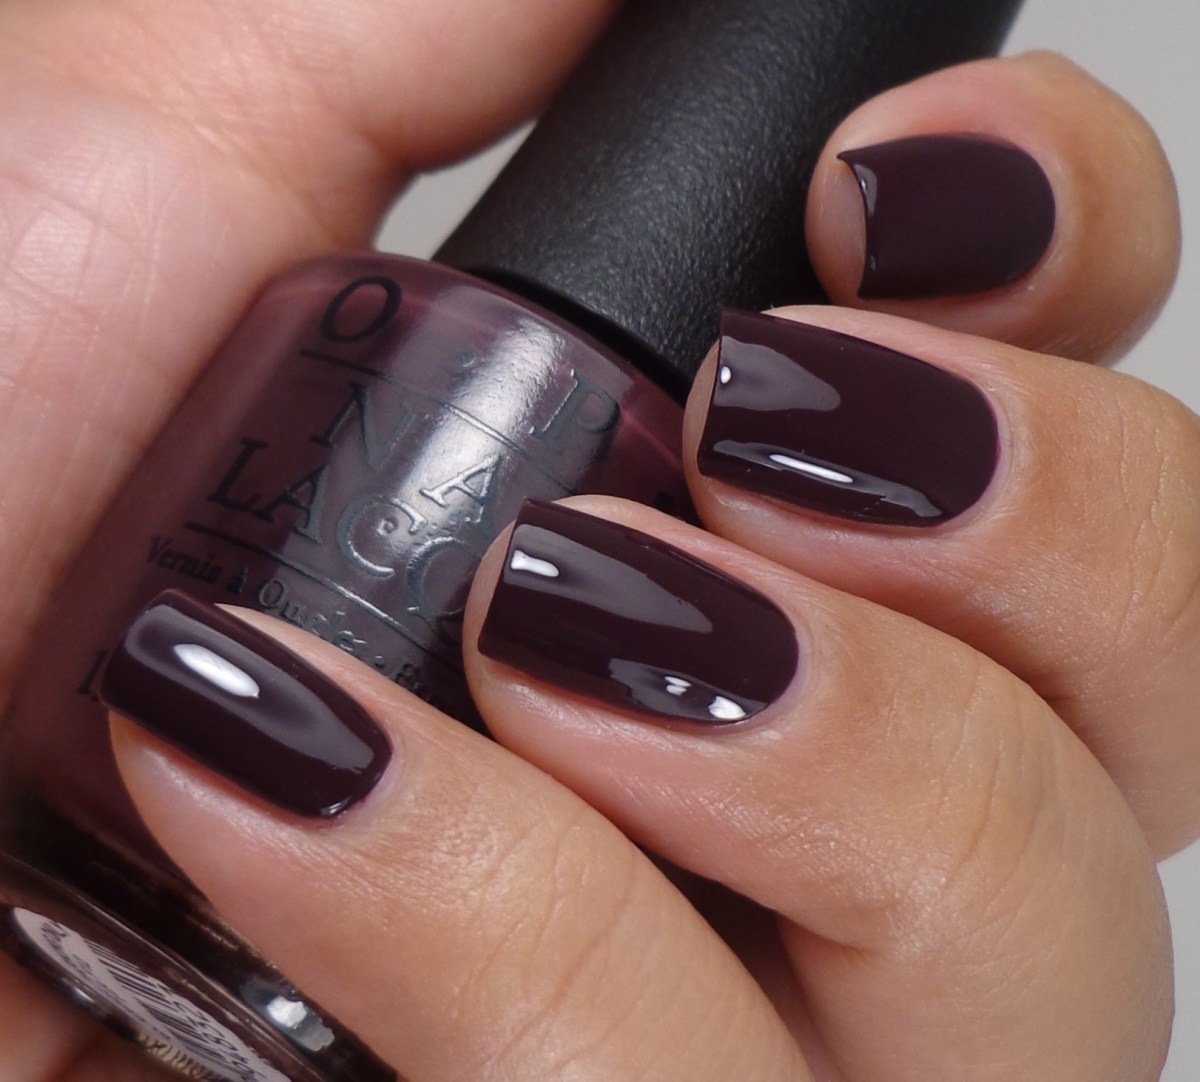 The Lacquer Ring - Vampy